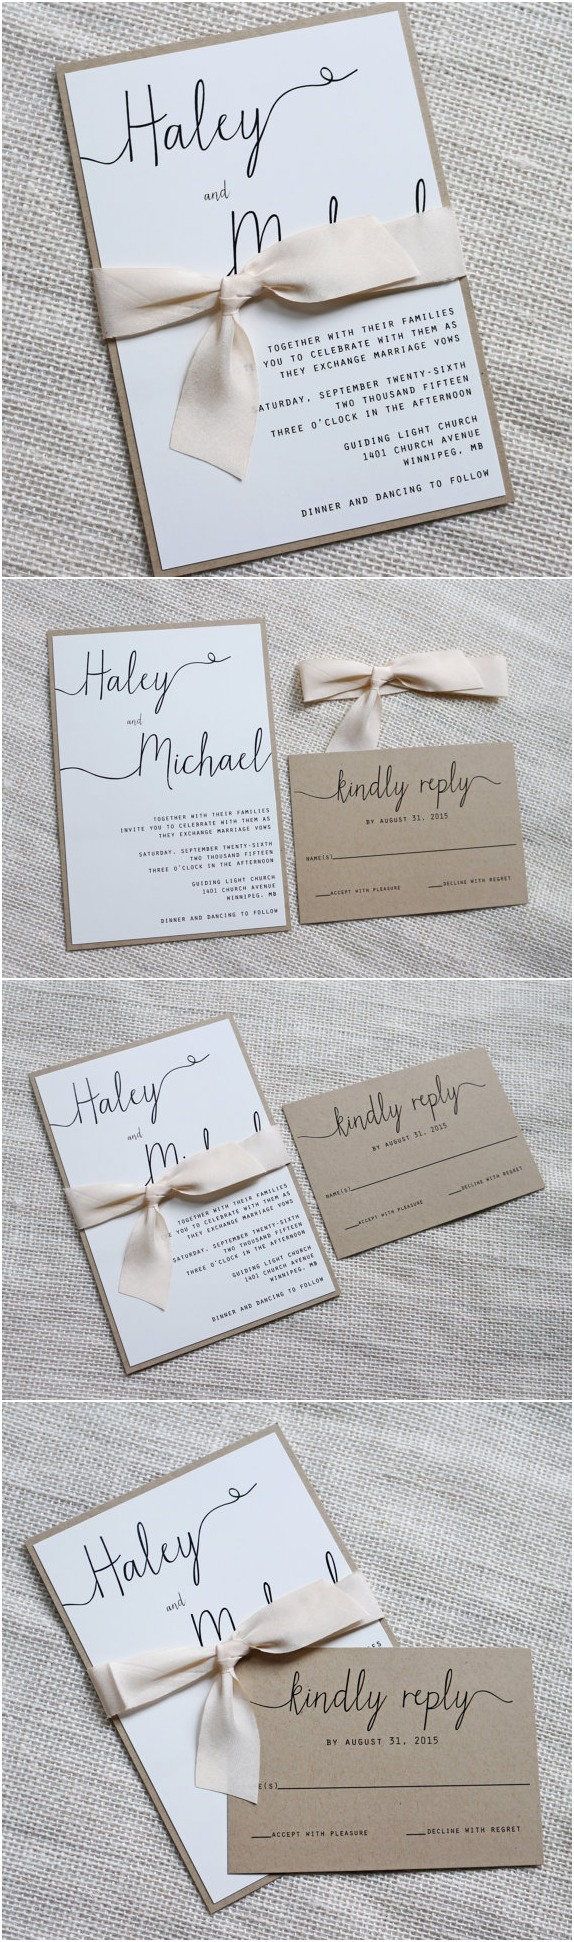 Simple wedding invitations inspiration